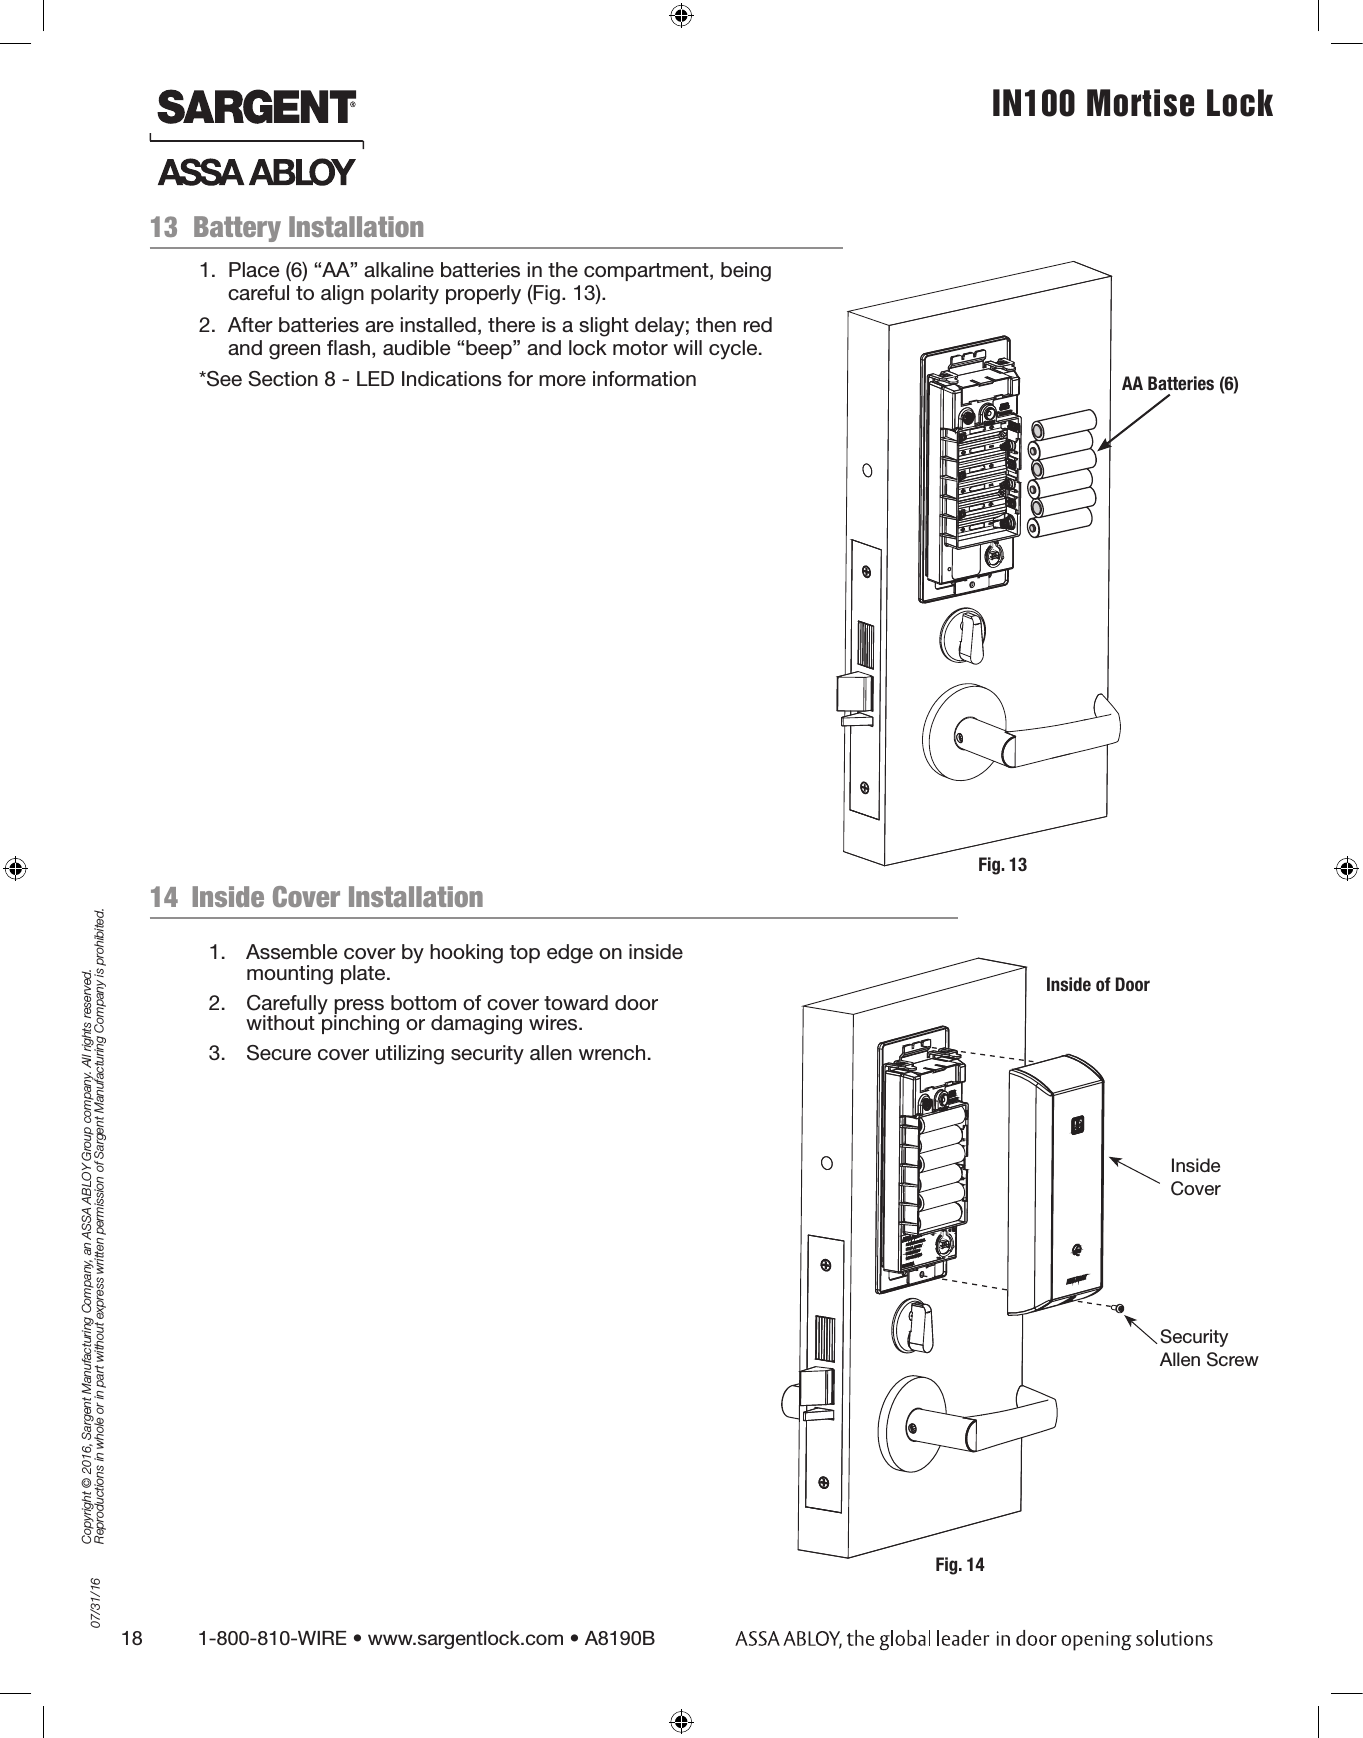 assa abloy aperio installation manual